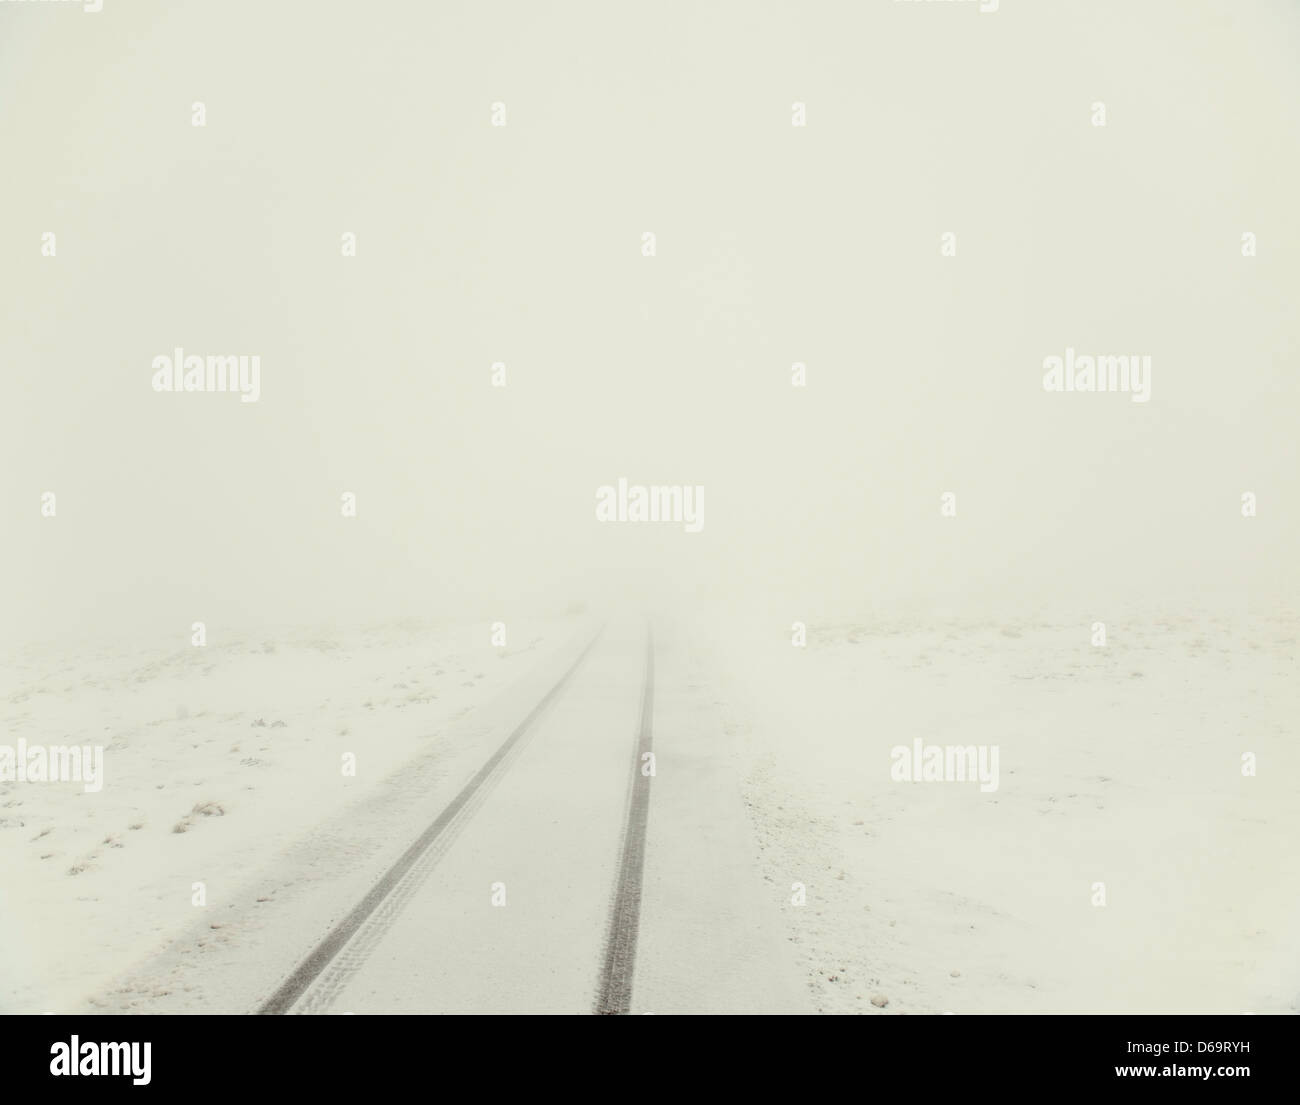 Tracks on rural road hidden by snow - Stock Image